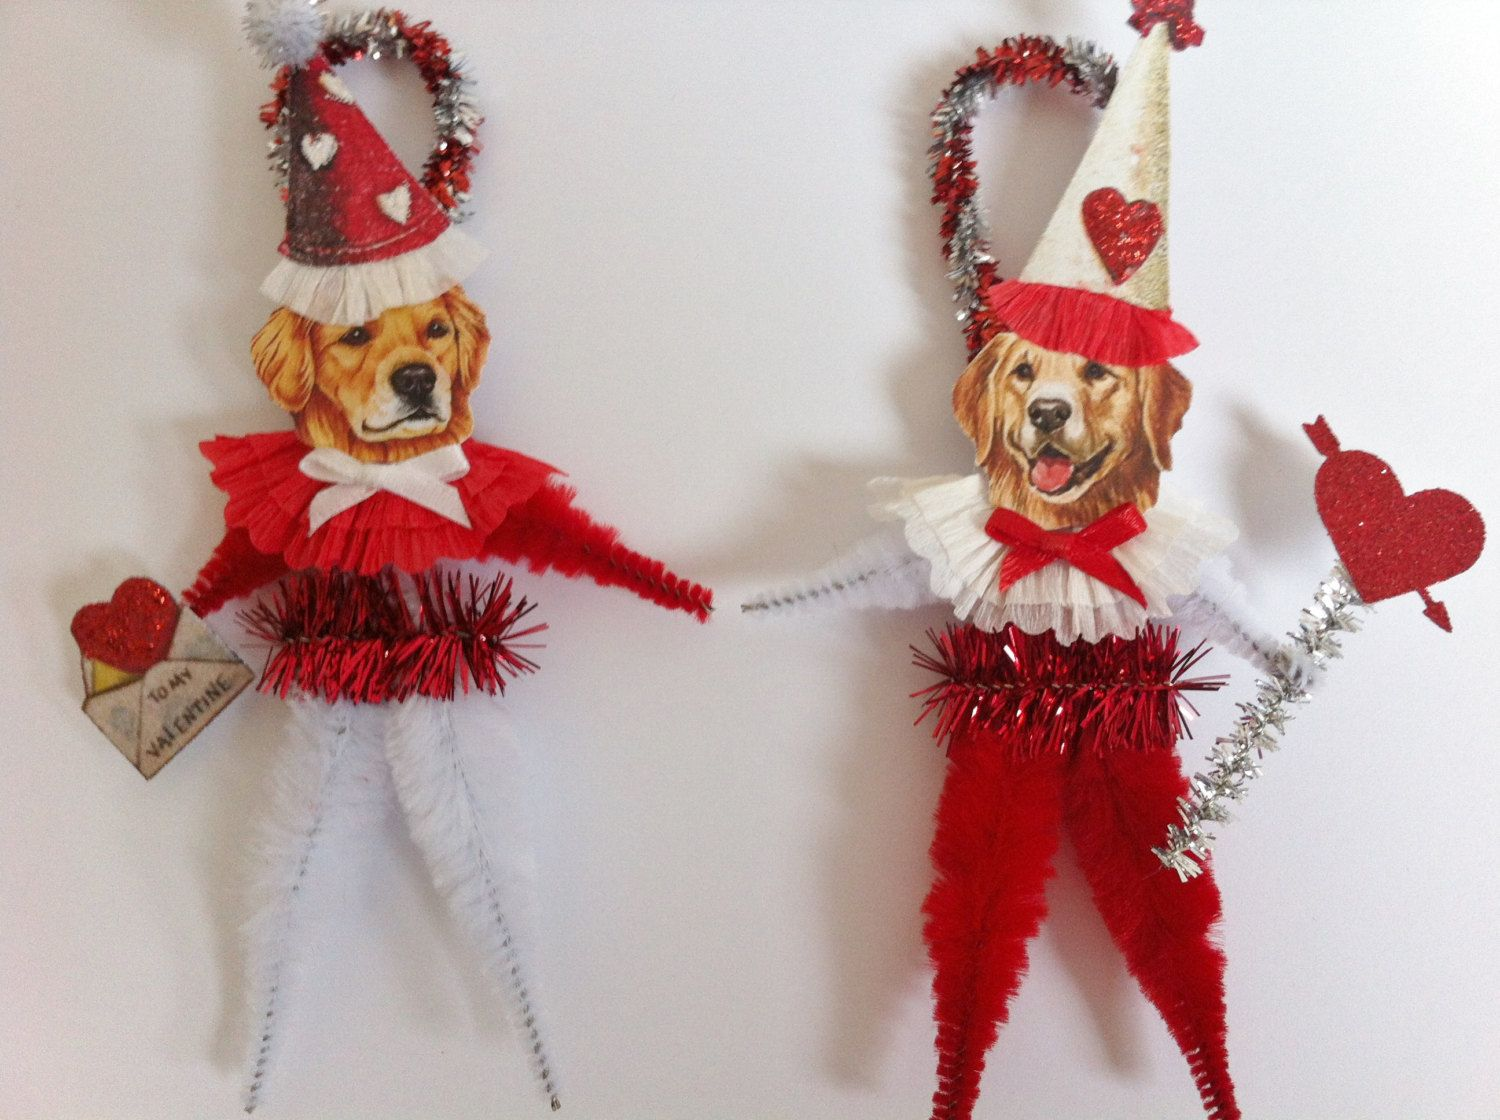 Vintage Style Chenille Pipe Cleaner Stem * DIY Valentine's Day Golden Retriever Dogs * Ornament Inspiration